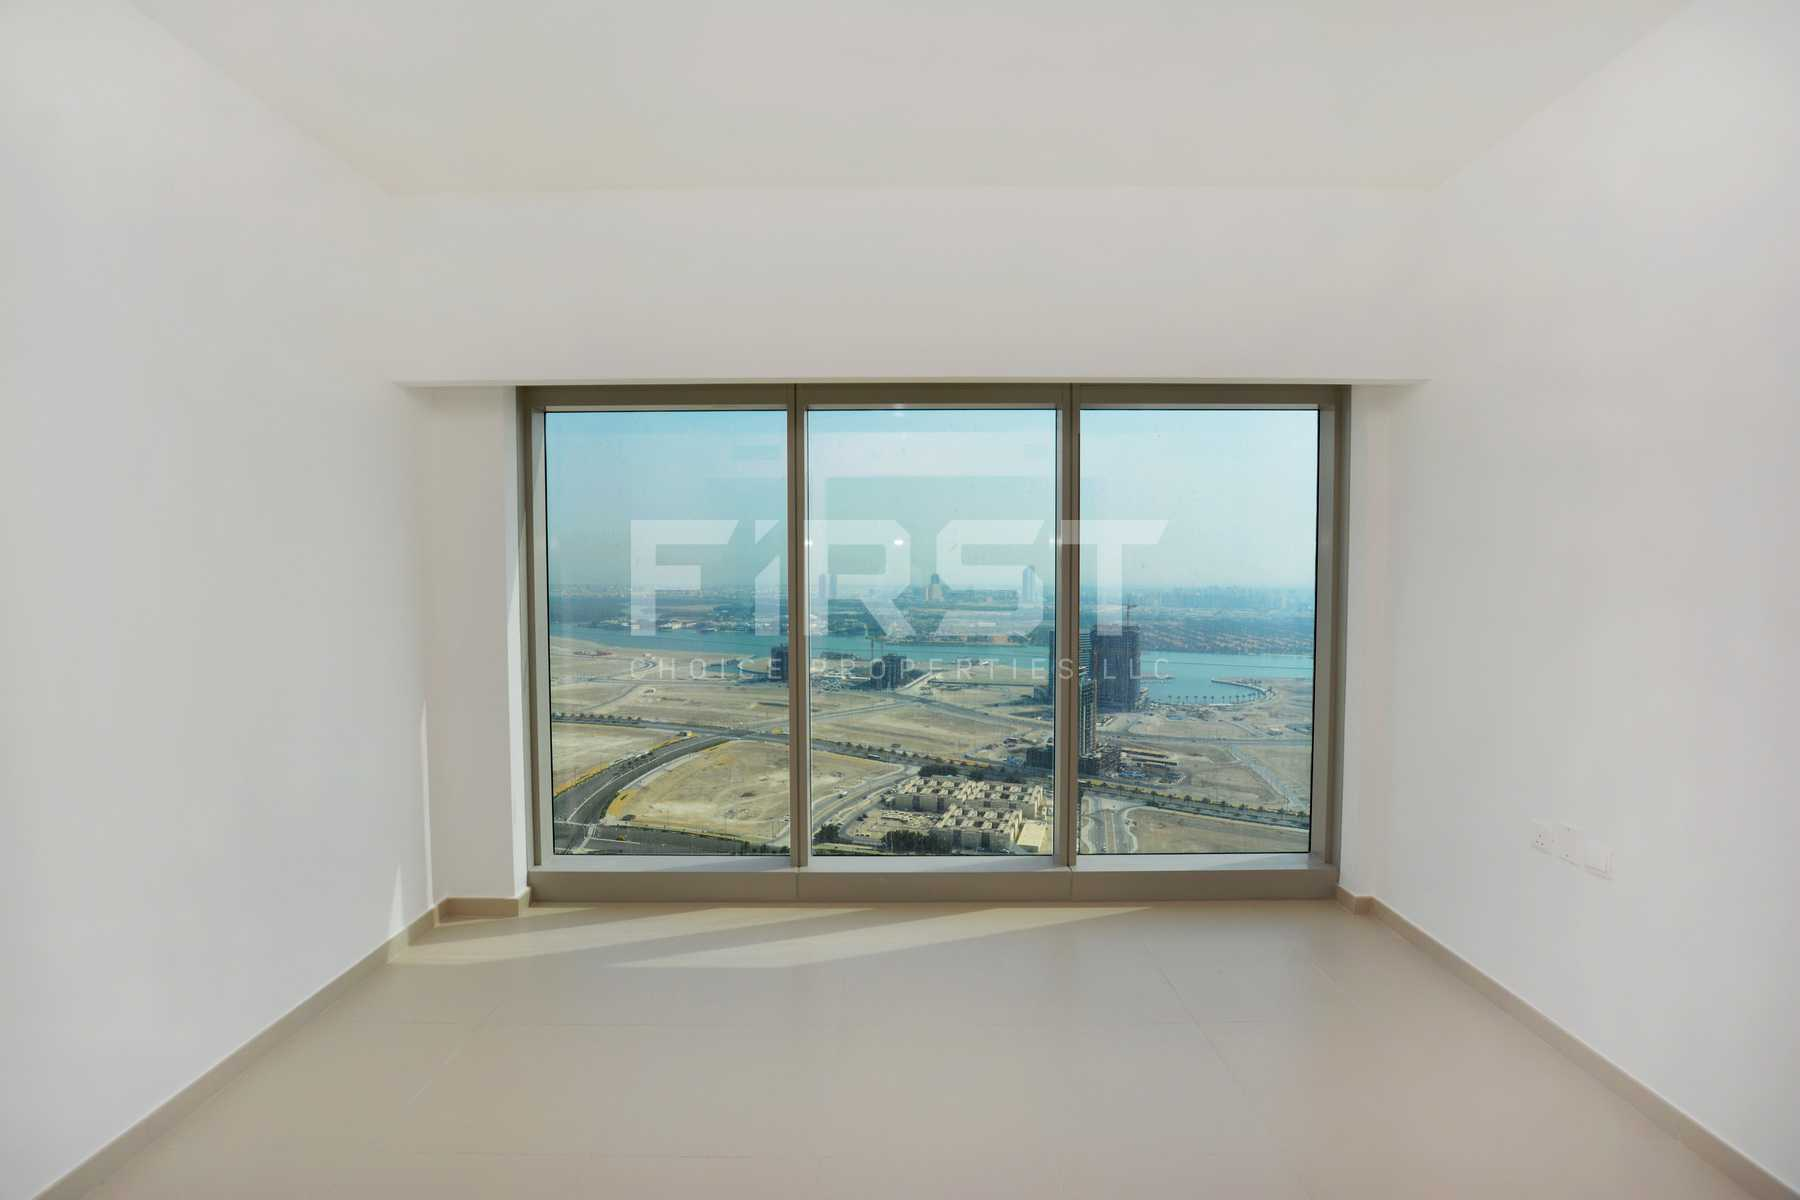 Internal Photo of 2+1 Bedroom Apartment in The Gate Tower Shams Abu Dhabi Al Reem Island Abu Dhabi UAE (21).jpg